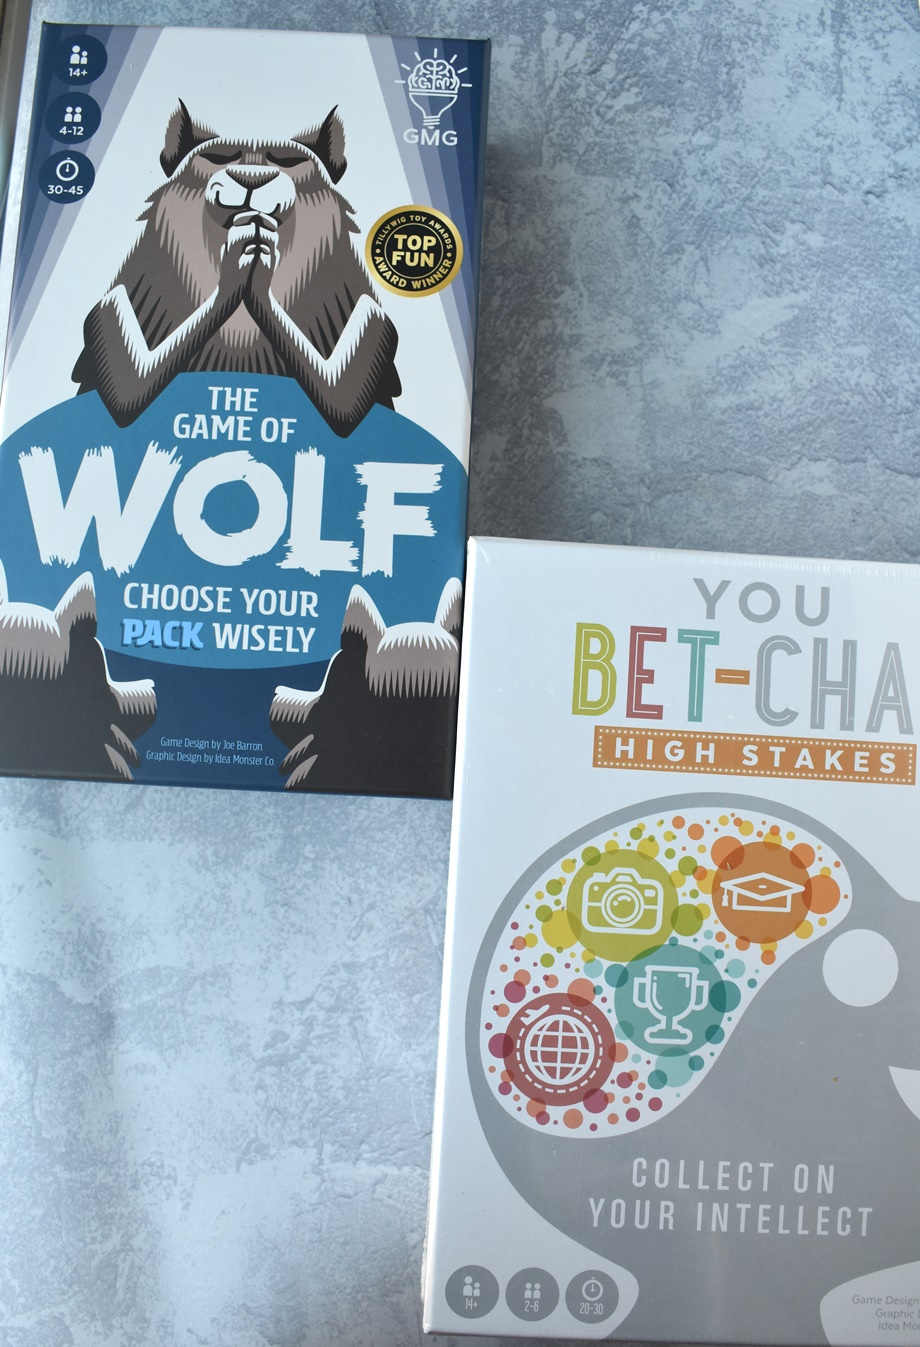 The Game of Wolf and You Bet-Cha Game